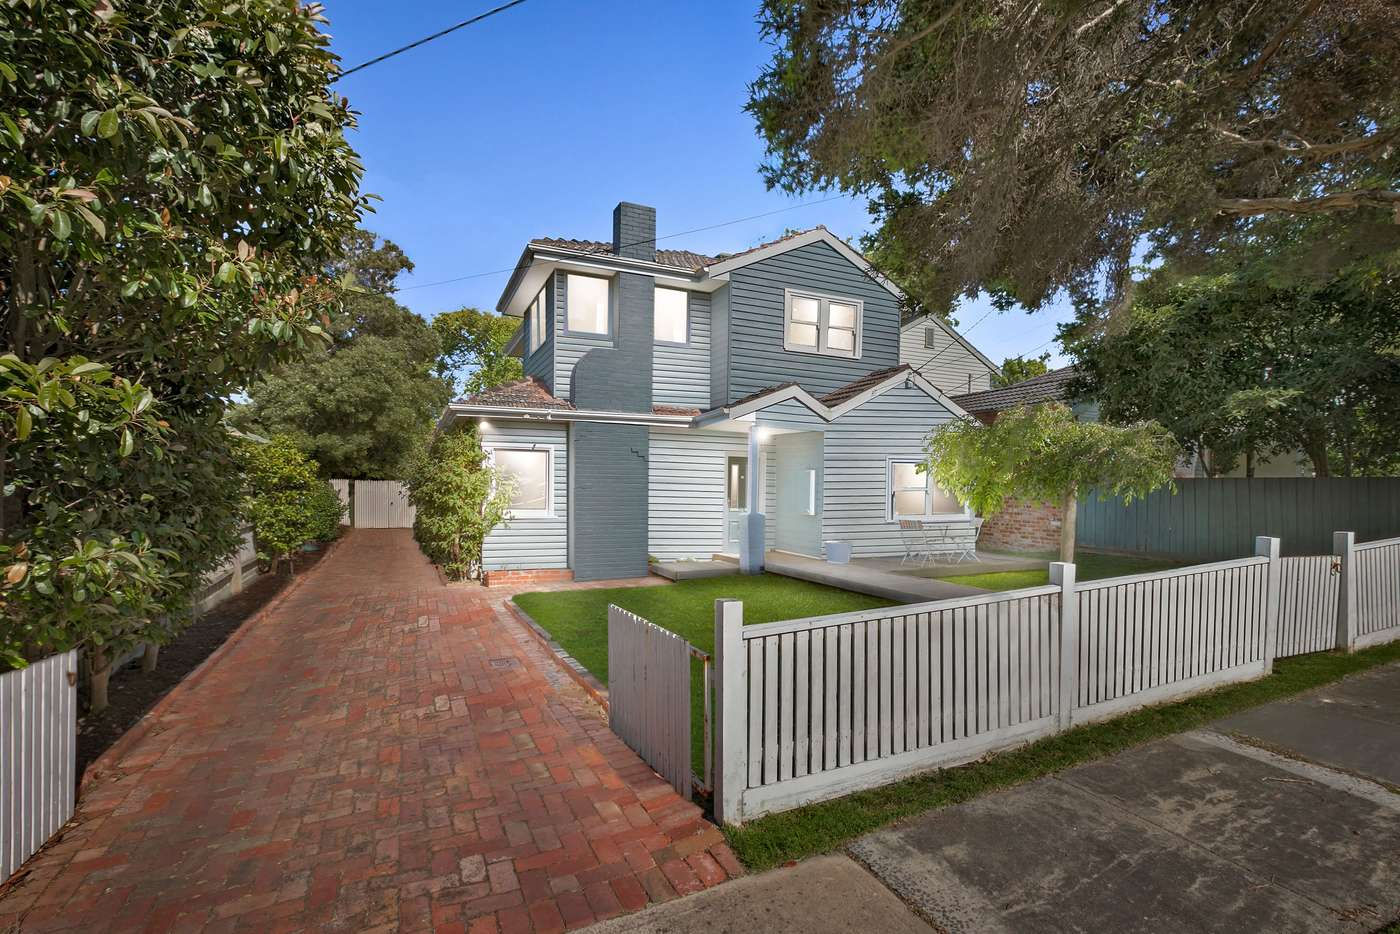 Main view of Homely house listing, 4 Geofrey Street, Frankston VIC 3199